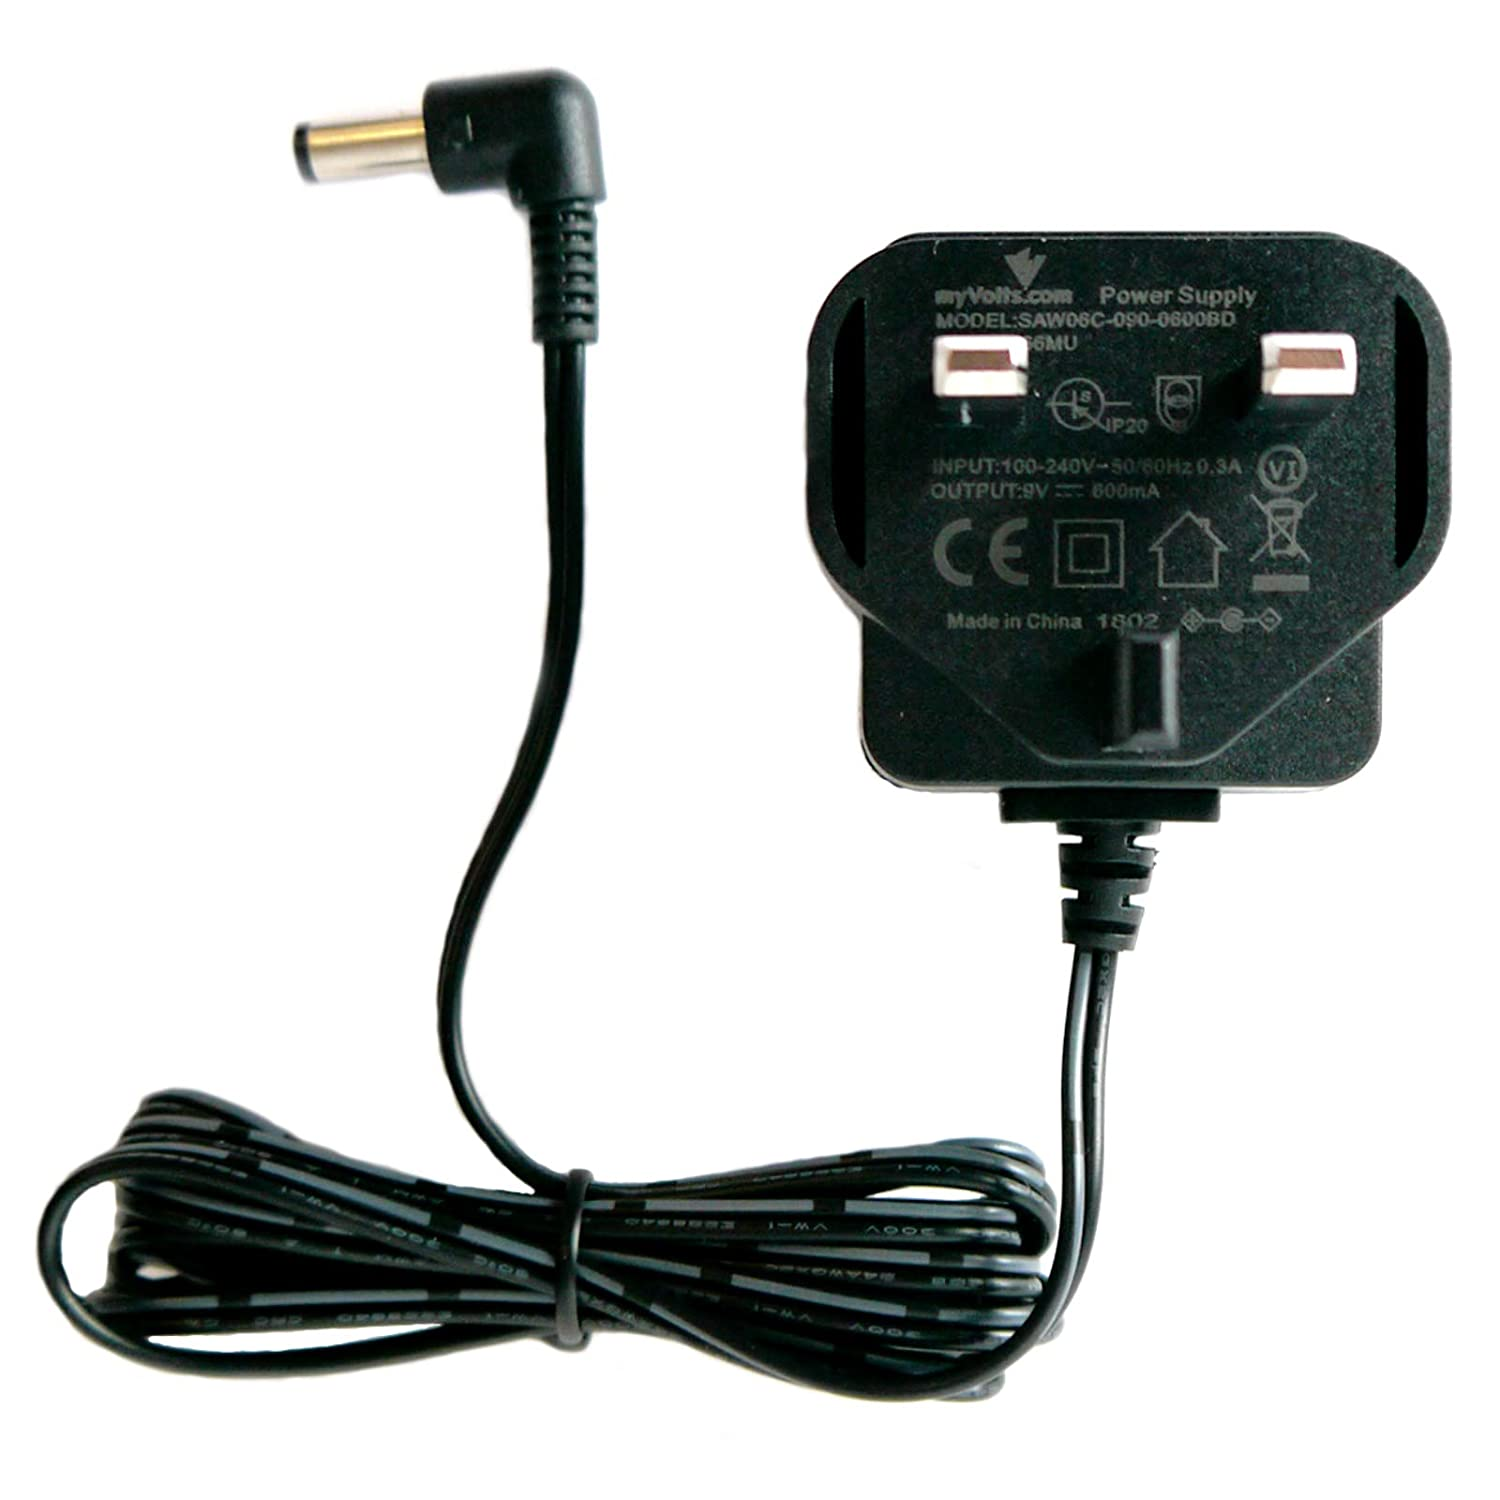 MyVolts 9V power supply adaptor compatible with Valeton Darktale Effect pedal - UK plug UK-27252